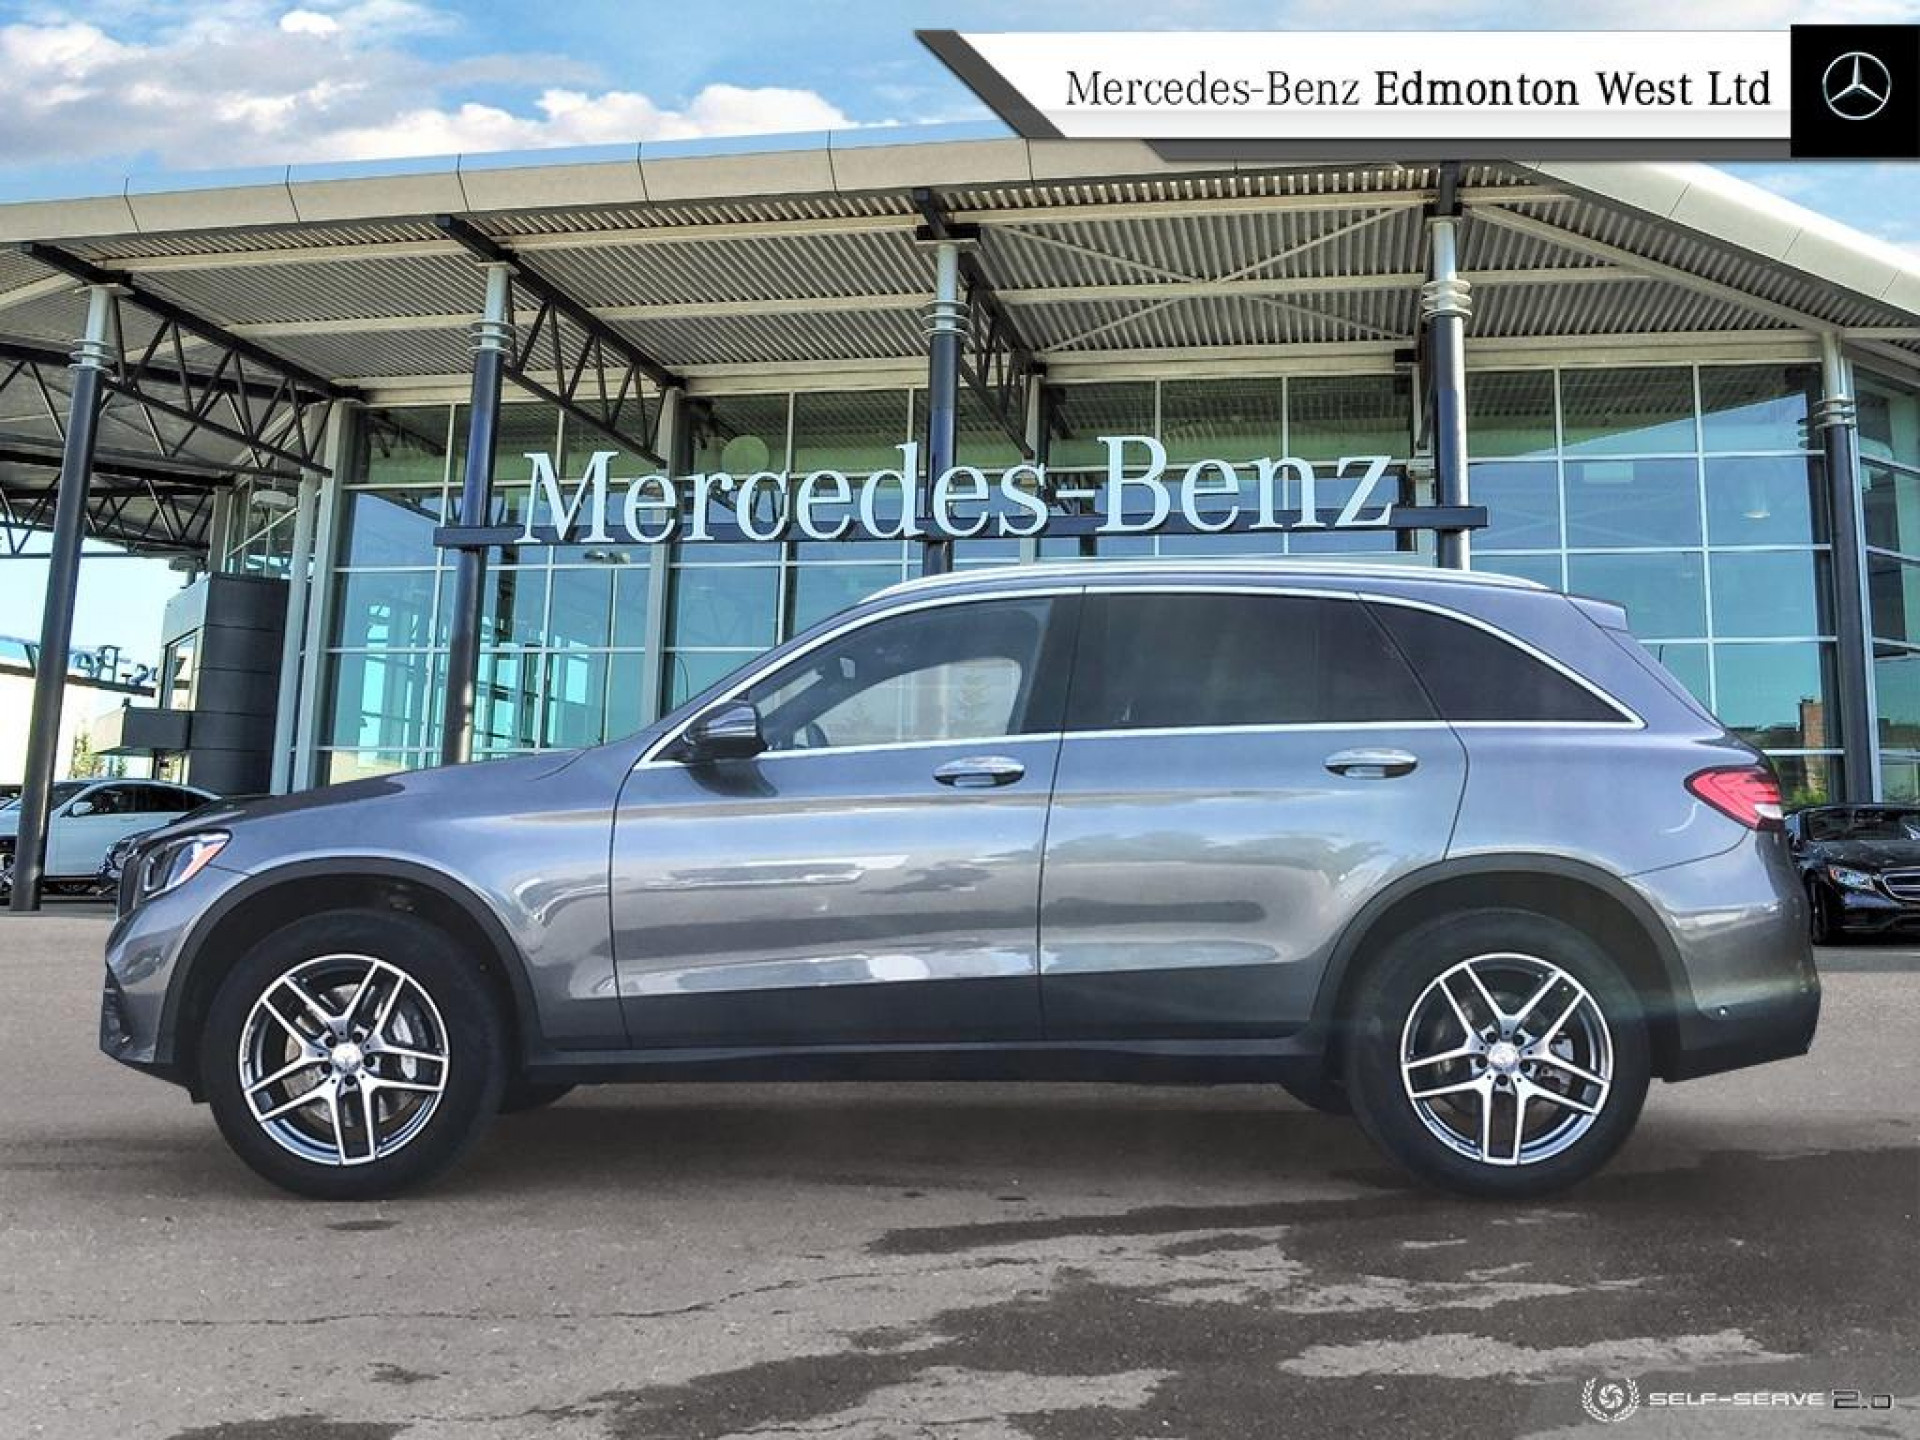 Certified Pre-Owned 2017 Mercedes Benz GLC-Class 300 4MATIC Single Owner, Certified